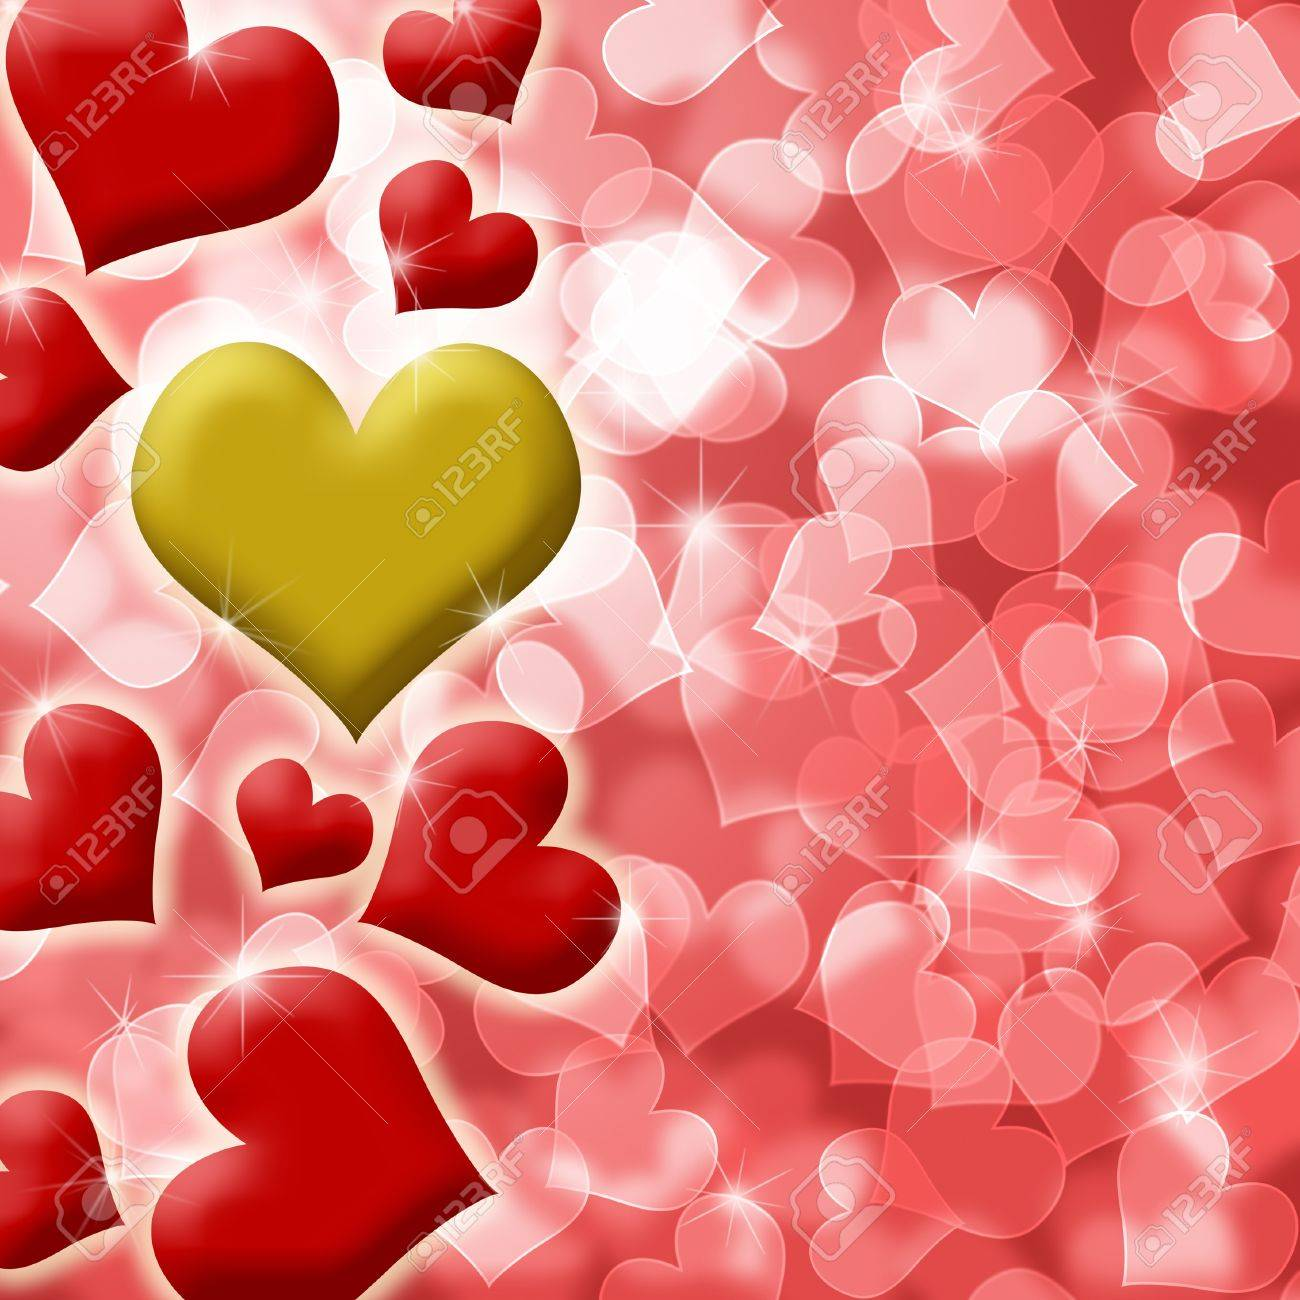 Happy Valentines Day Heart of Gold Blurred Defocused Background Illustration Stock Illustration - 8610569